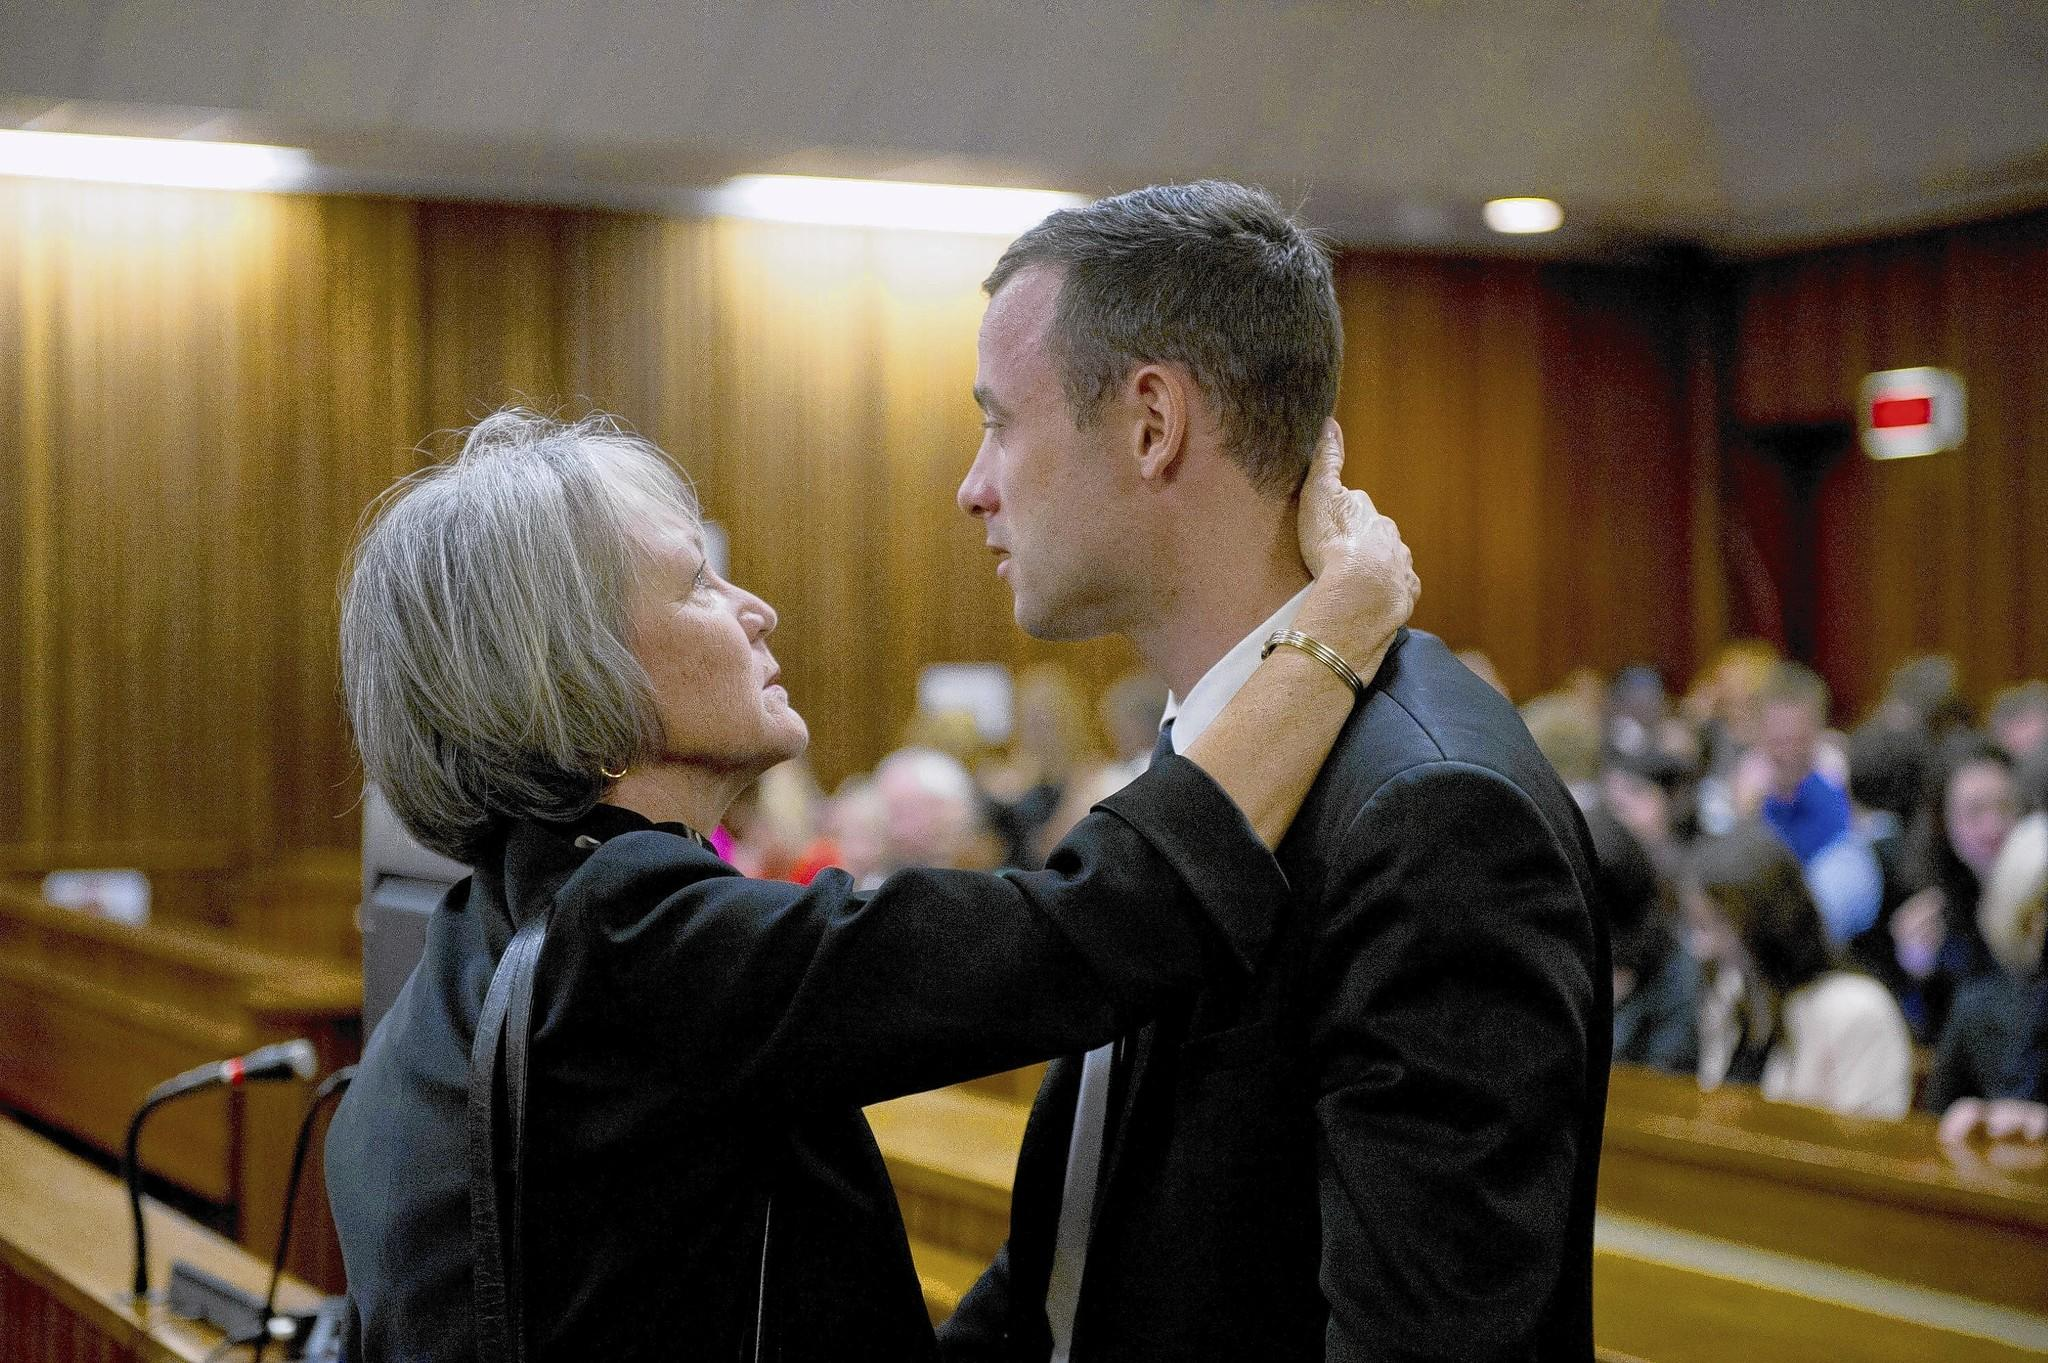 South African Olympian Oscar Pistorius speaks with a family member during his trial in Pretoria, South Africa. He has pleaded not guilty to murder in the death of his girlfriend, Reeva Steenkamp. He has said he mistook her for an intruder before shooting through a door in his apartment.